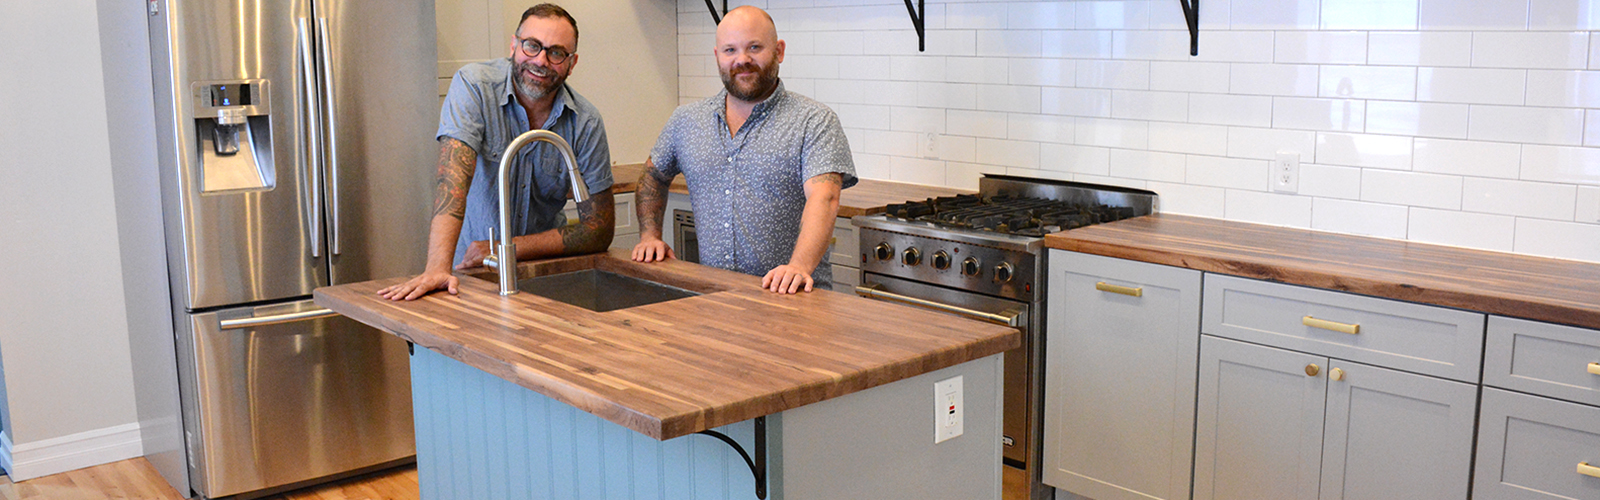 Keith Szczygiel and Sean Wrafter paired up on a few projects as solo entrepreneurs before launching their joint company, Acme Cabinet. <span class='image-credits'>Dan Cappellazzo</span>